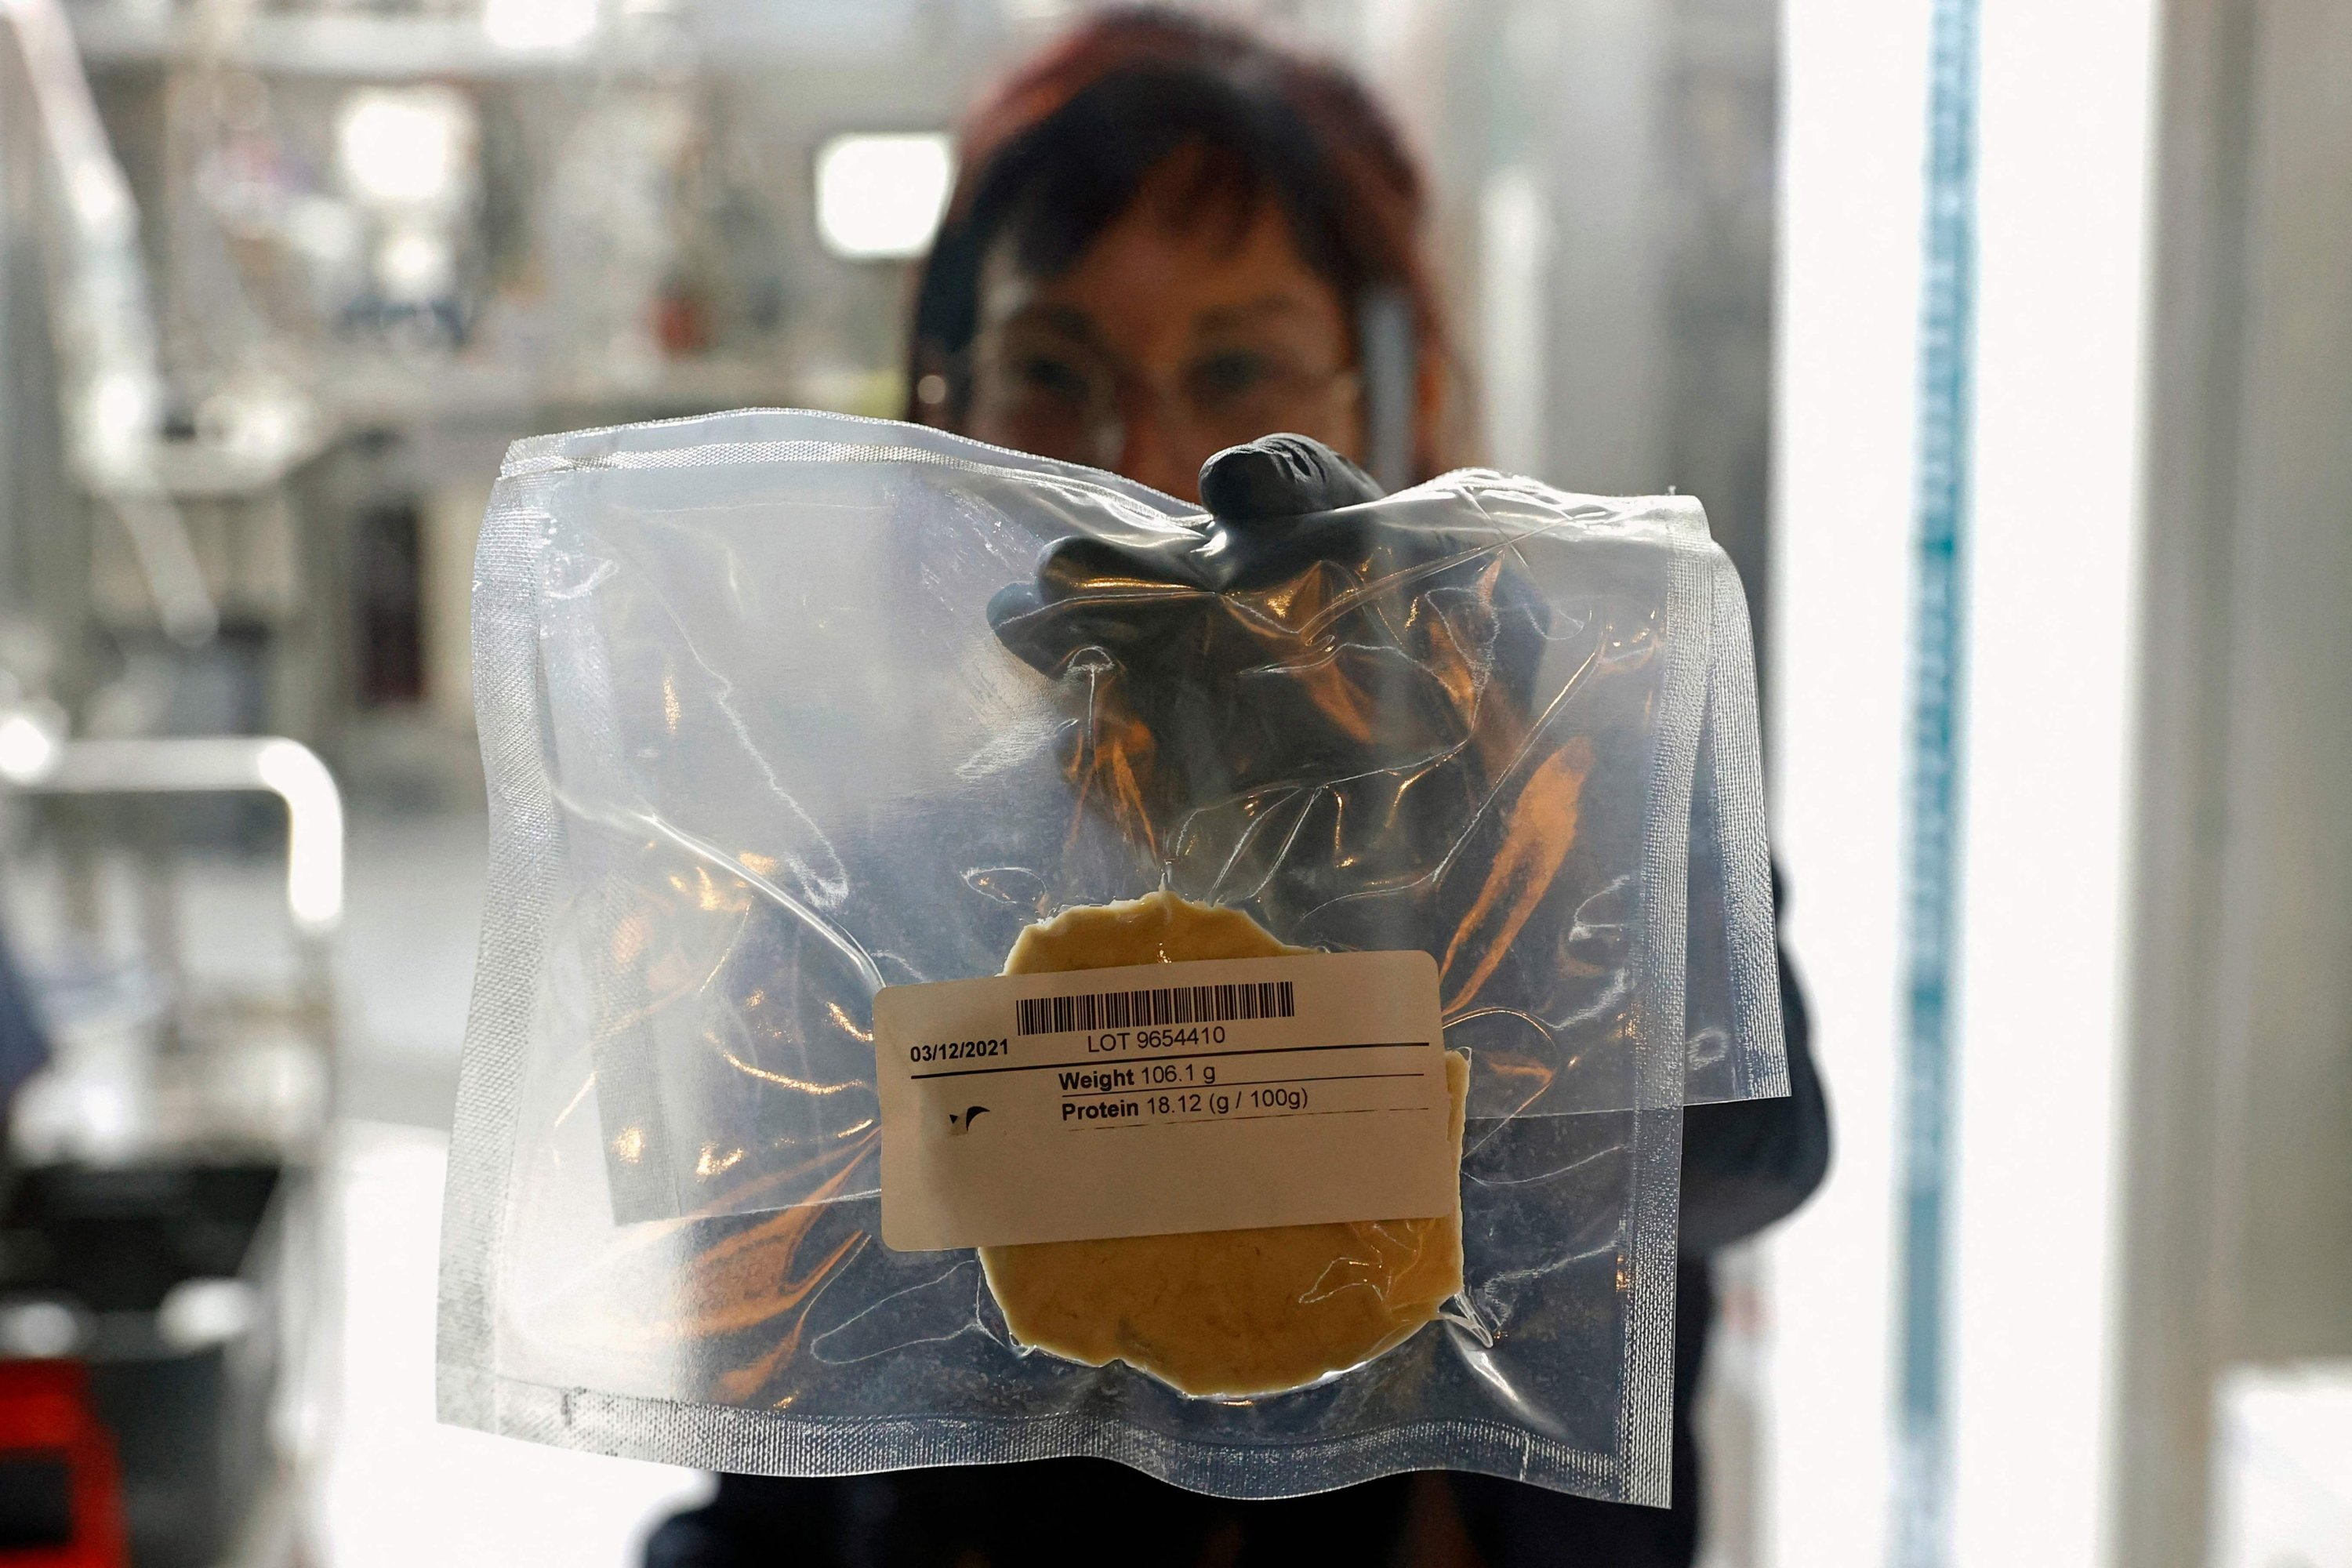 A technician displays lab-grown chicken meat in a sealed bag at the food-tech startup SuperMeat in Ness Ziona, central Israel, June 18, 2021. (AFP Photo)